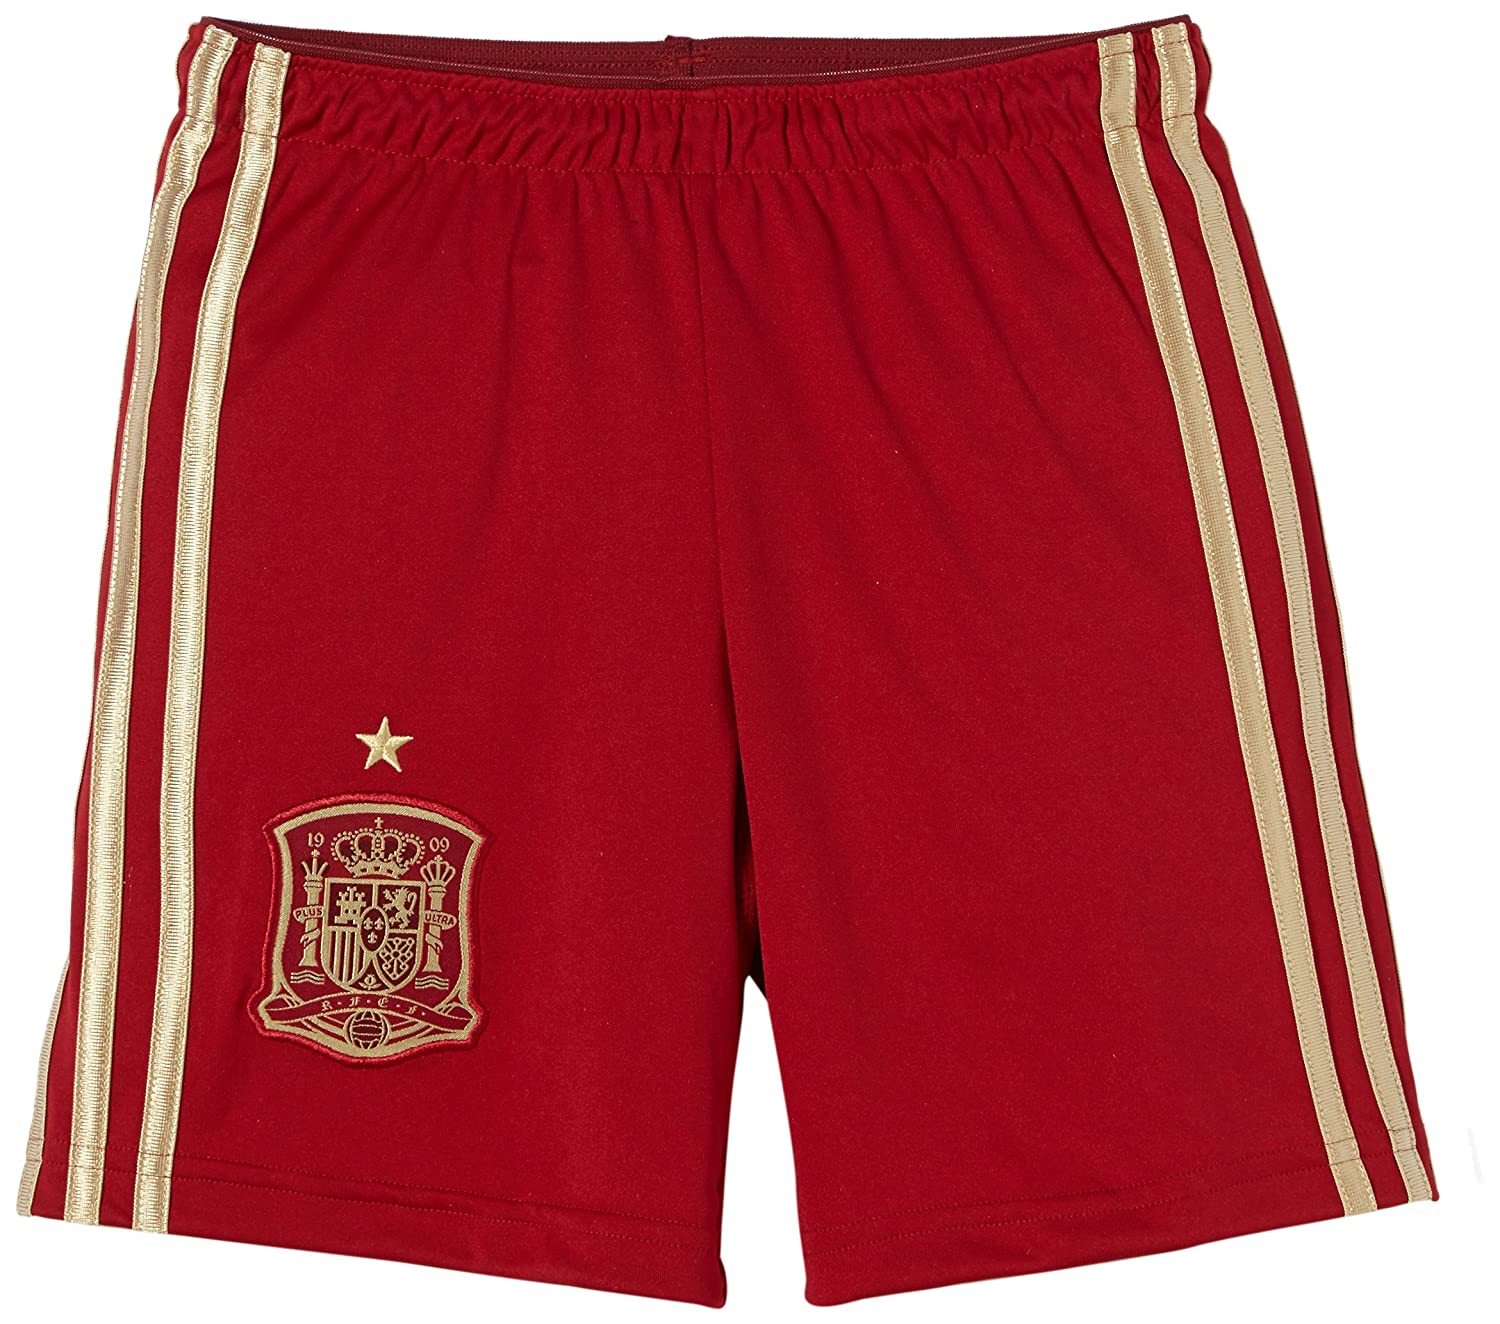 2014-15 Spain Home World Cup Football Shorts (Kids) Adidas